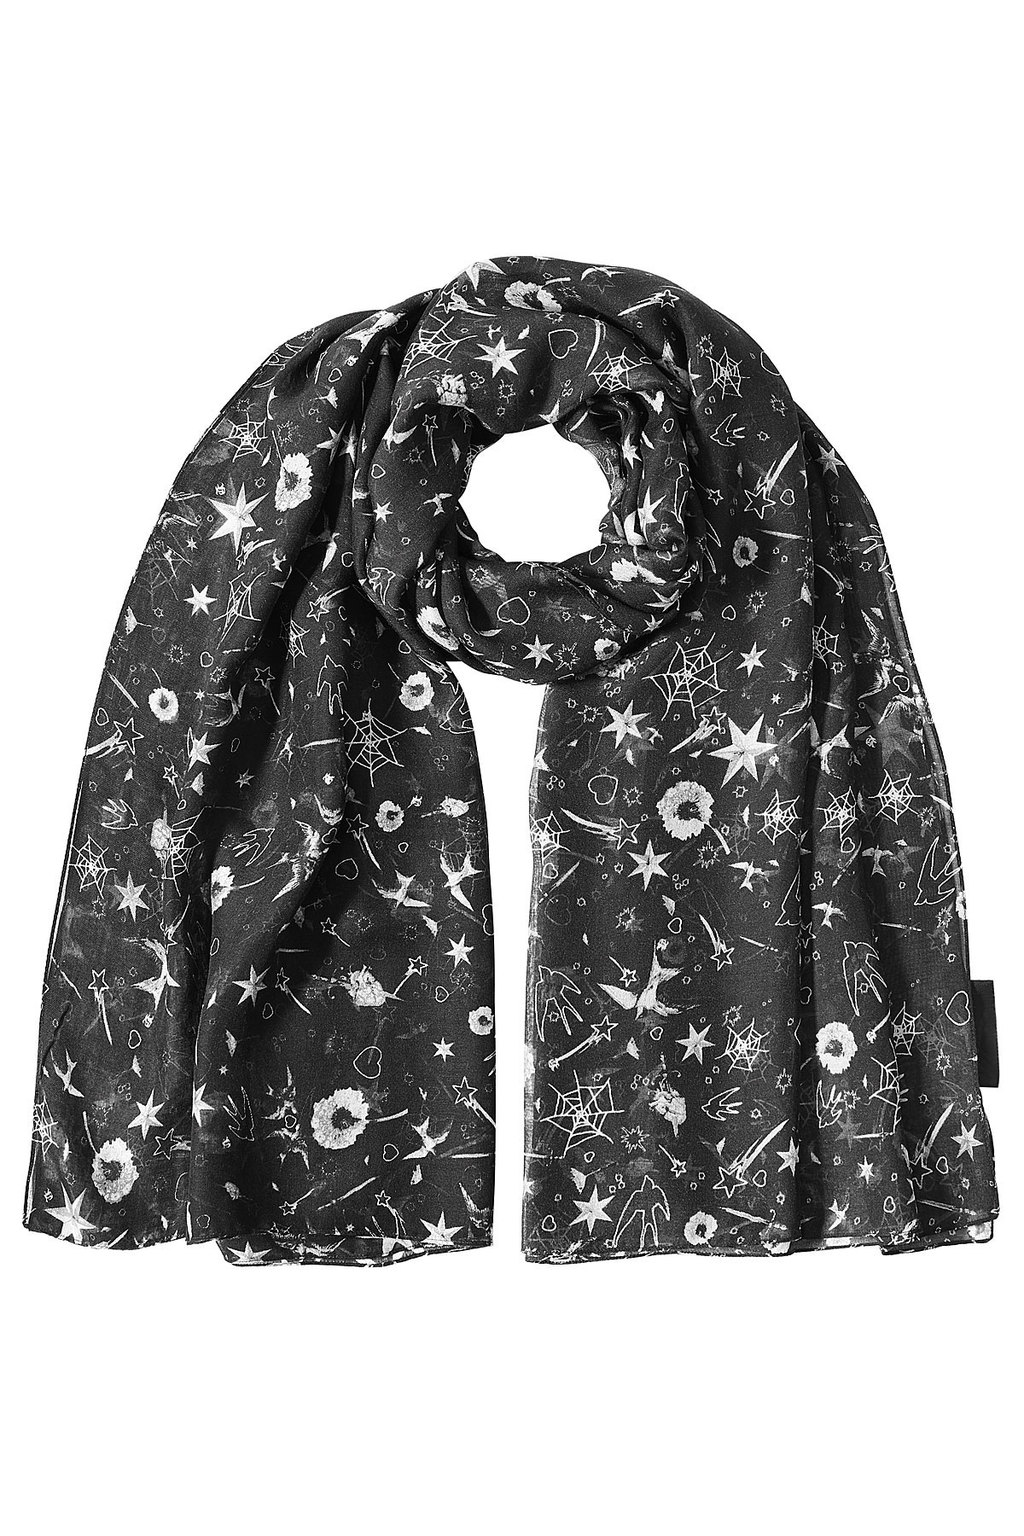 Printed Scarf With Silk Black - predominant colour: black; occasions: casual; type of pattern: heavy; style: regular; size: standard; material: fabric; pattern: florals; season: s/s 2016